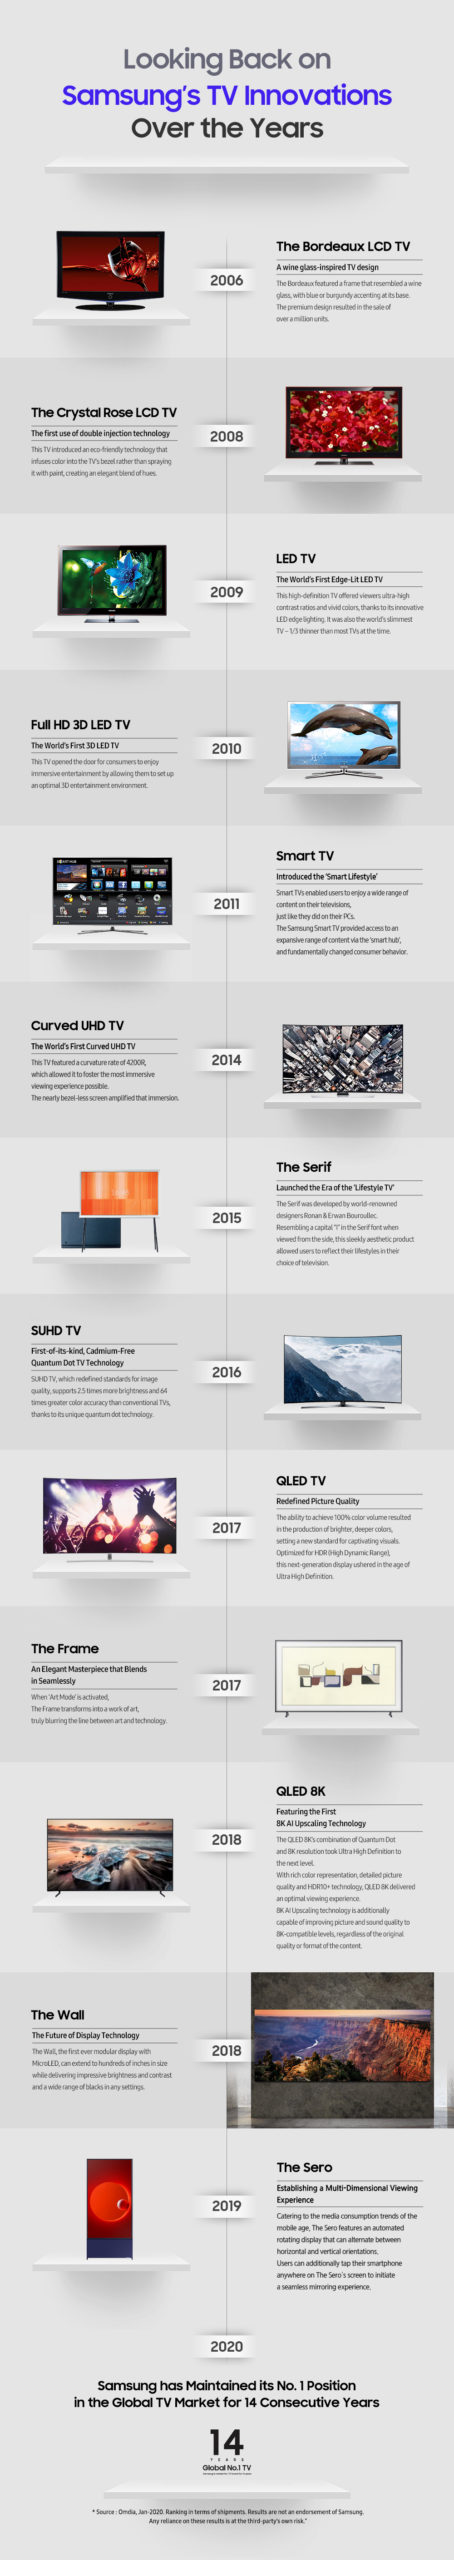 [Infographic] Looking Back on Samsung's TV Innovations Over the Years